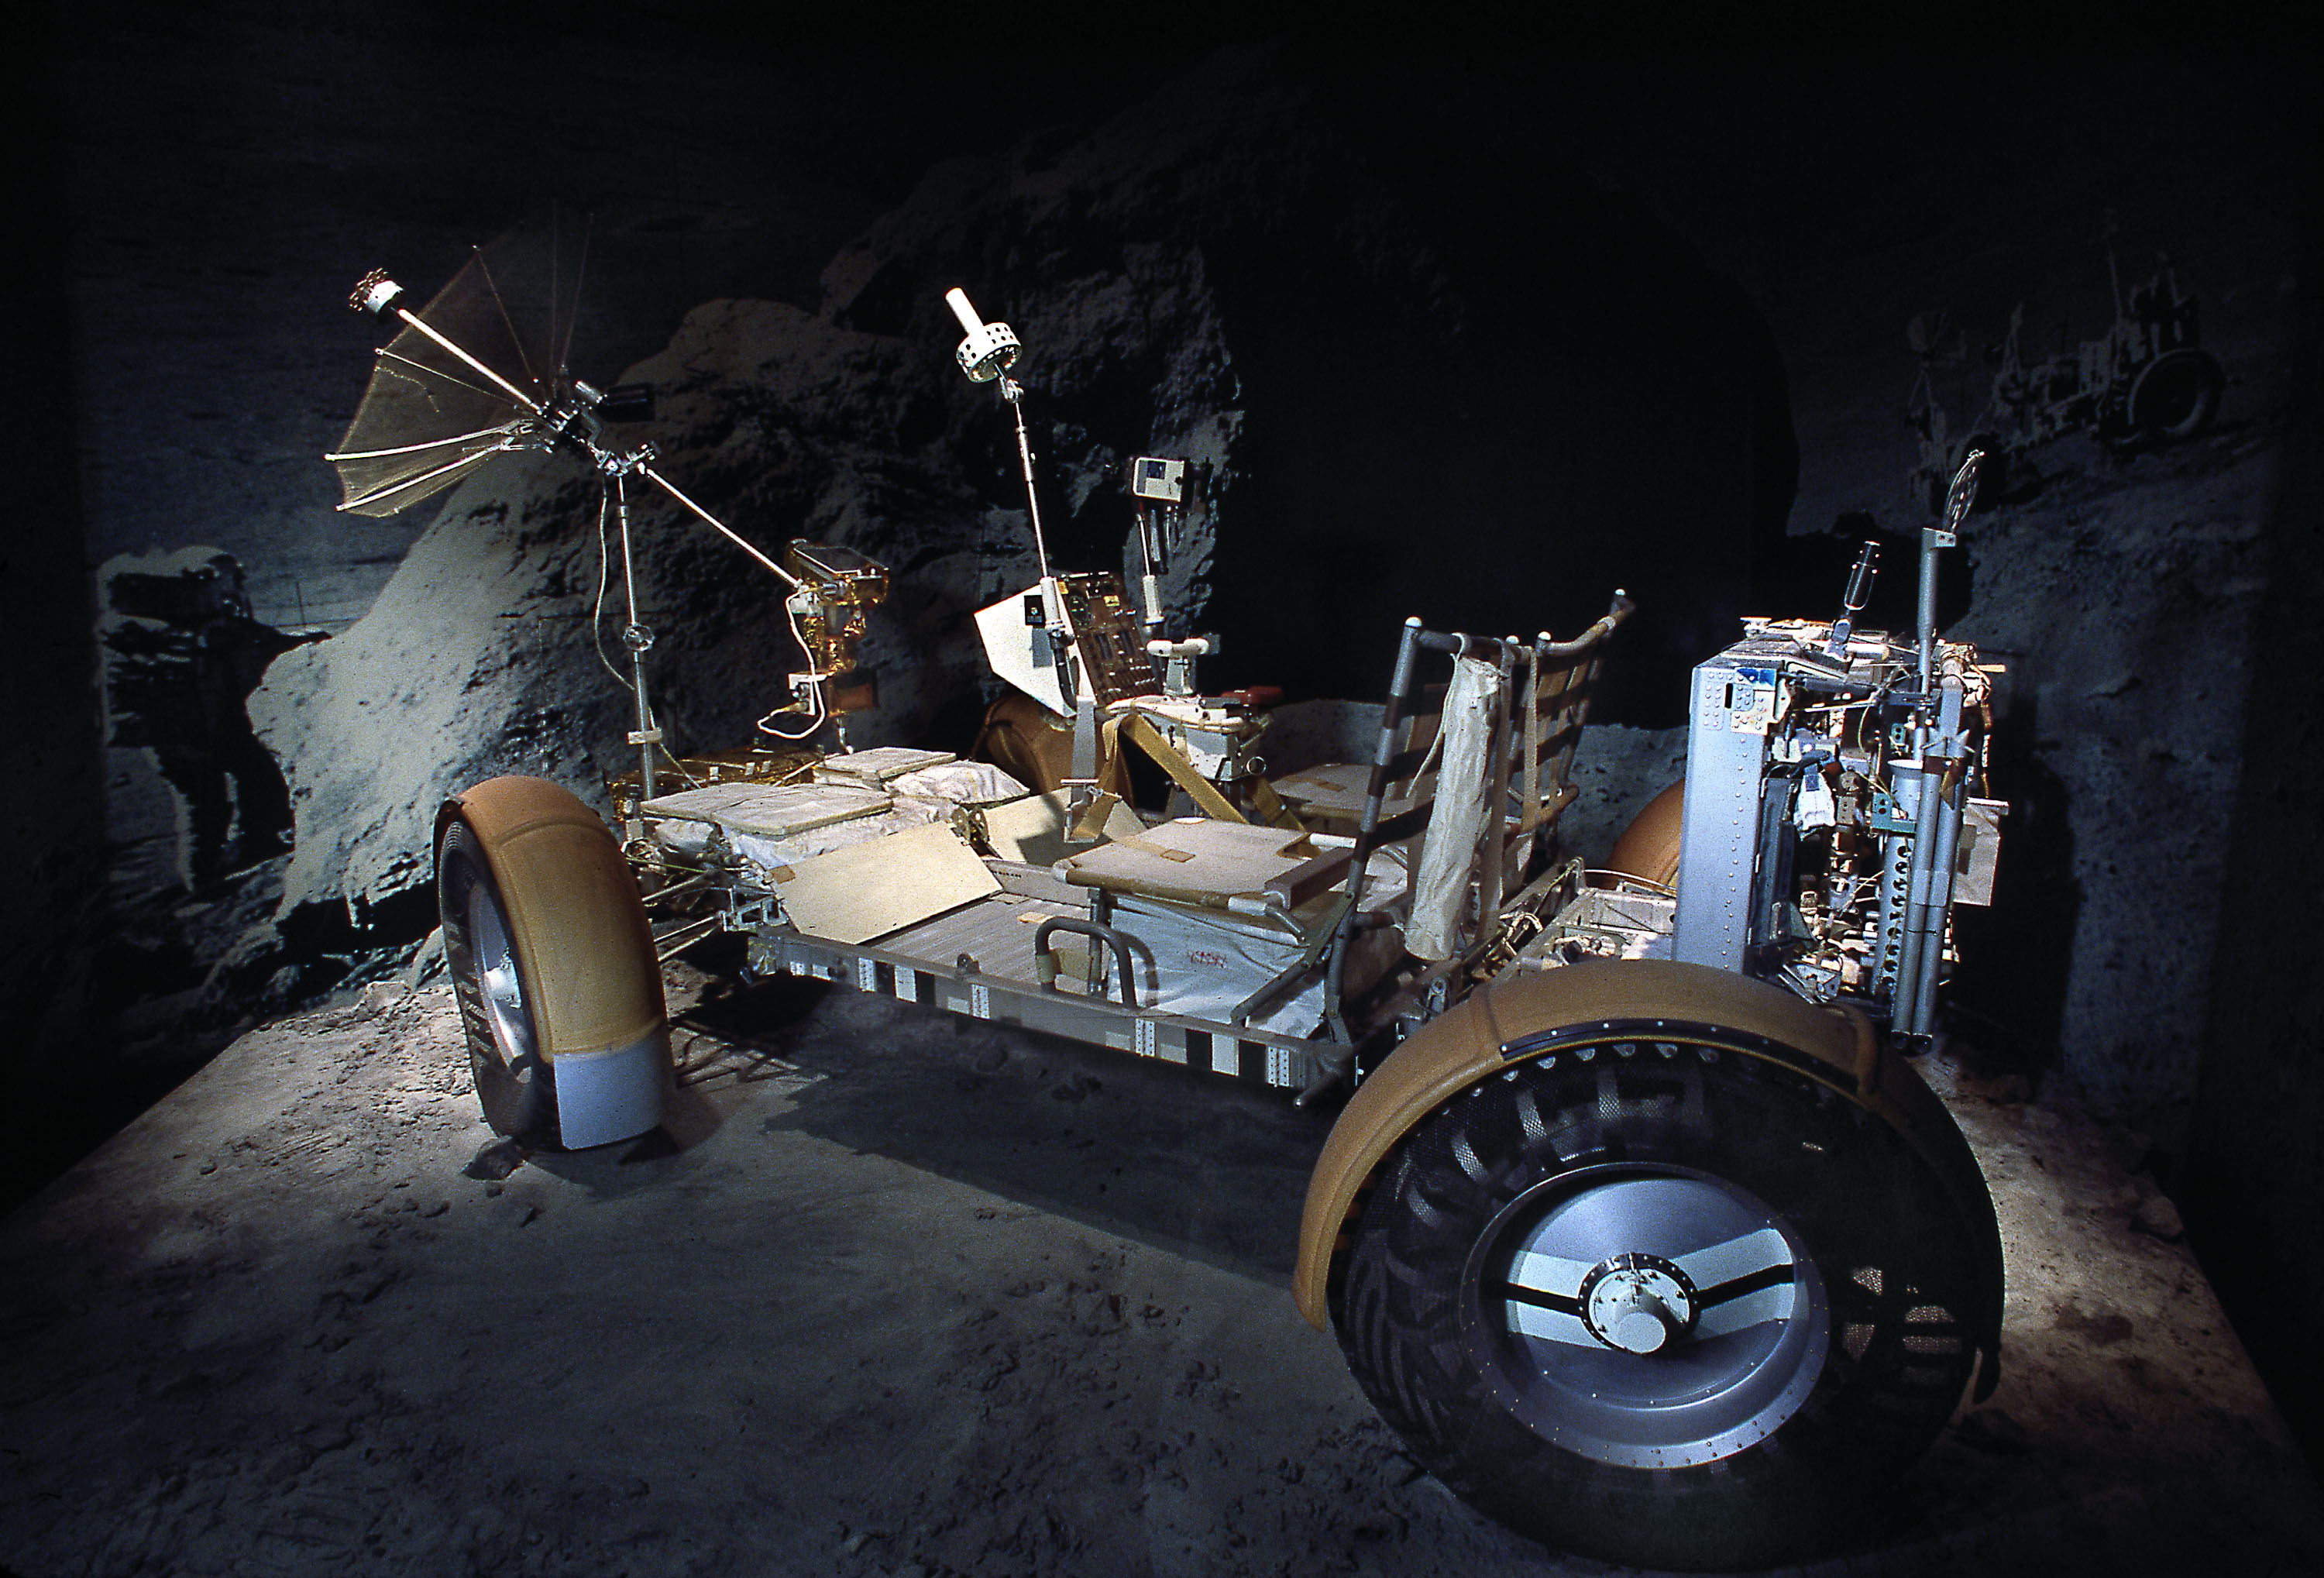 Image of the Lunar Roving Vehicle on display.